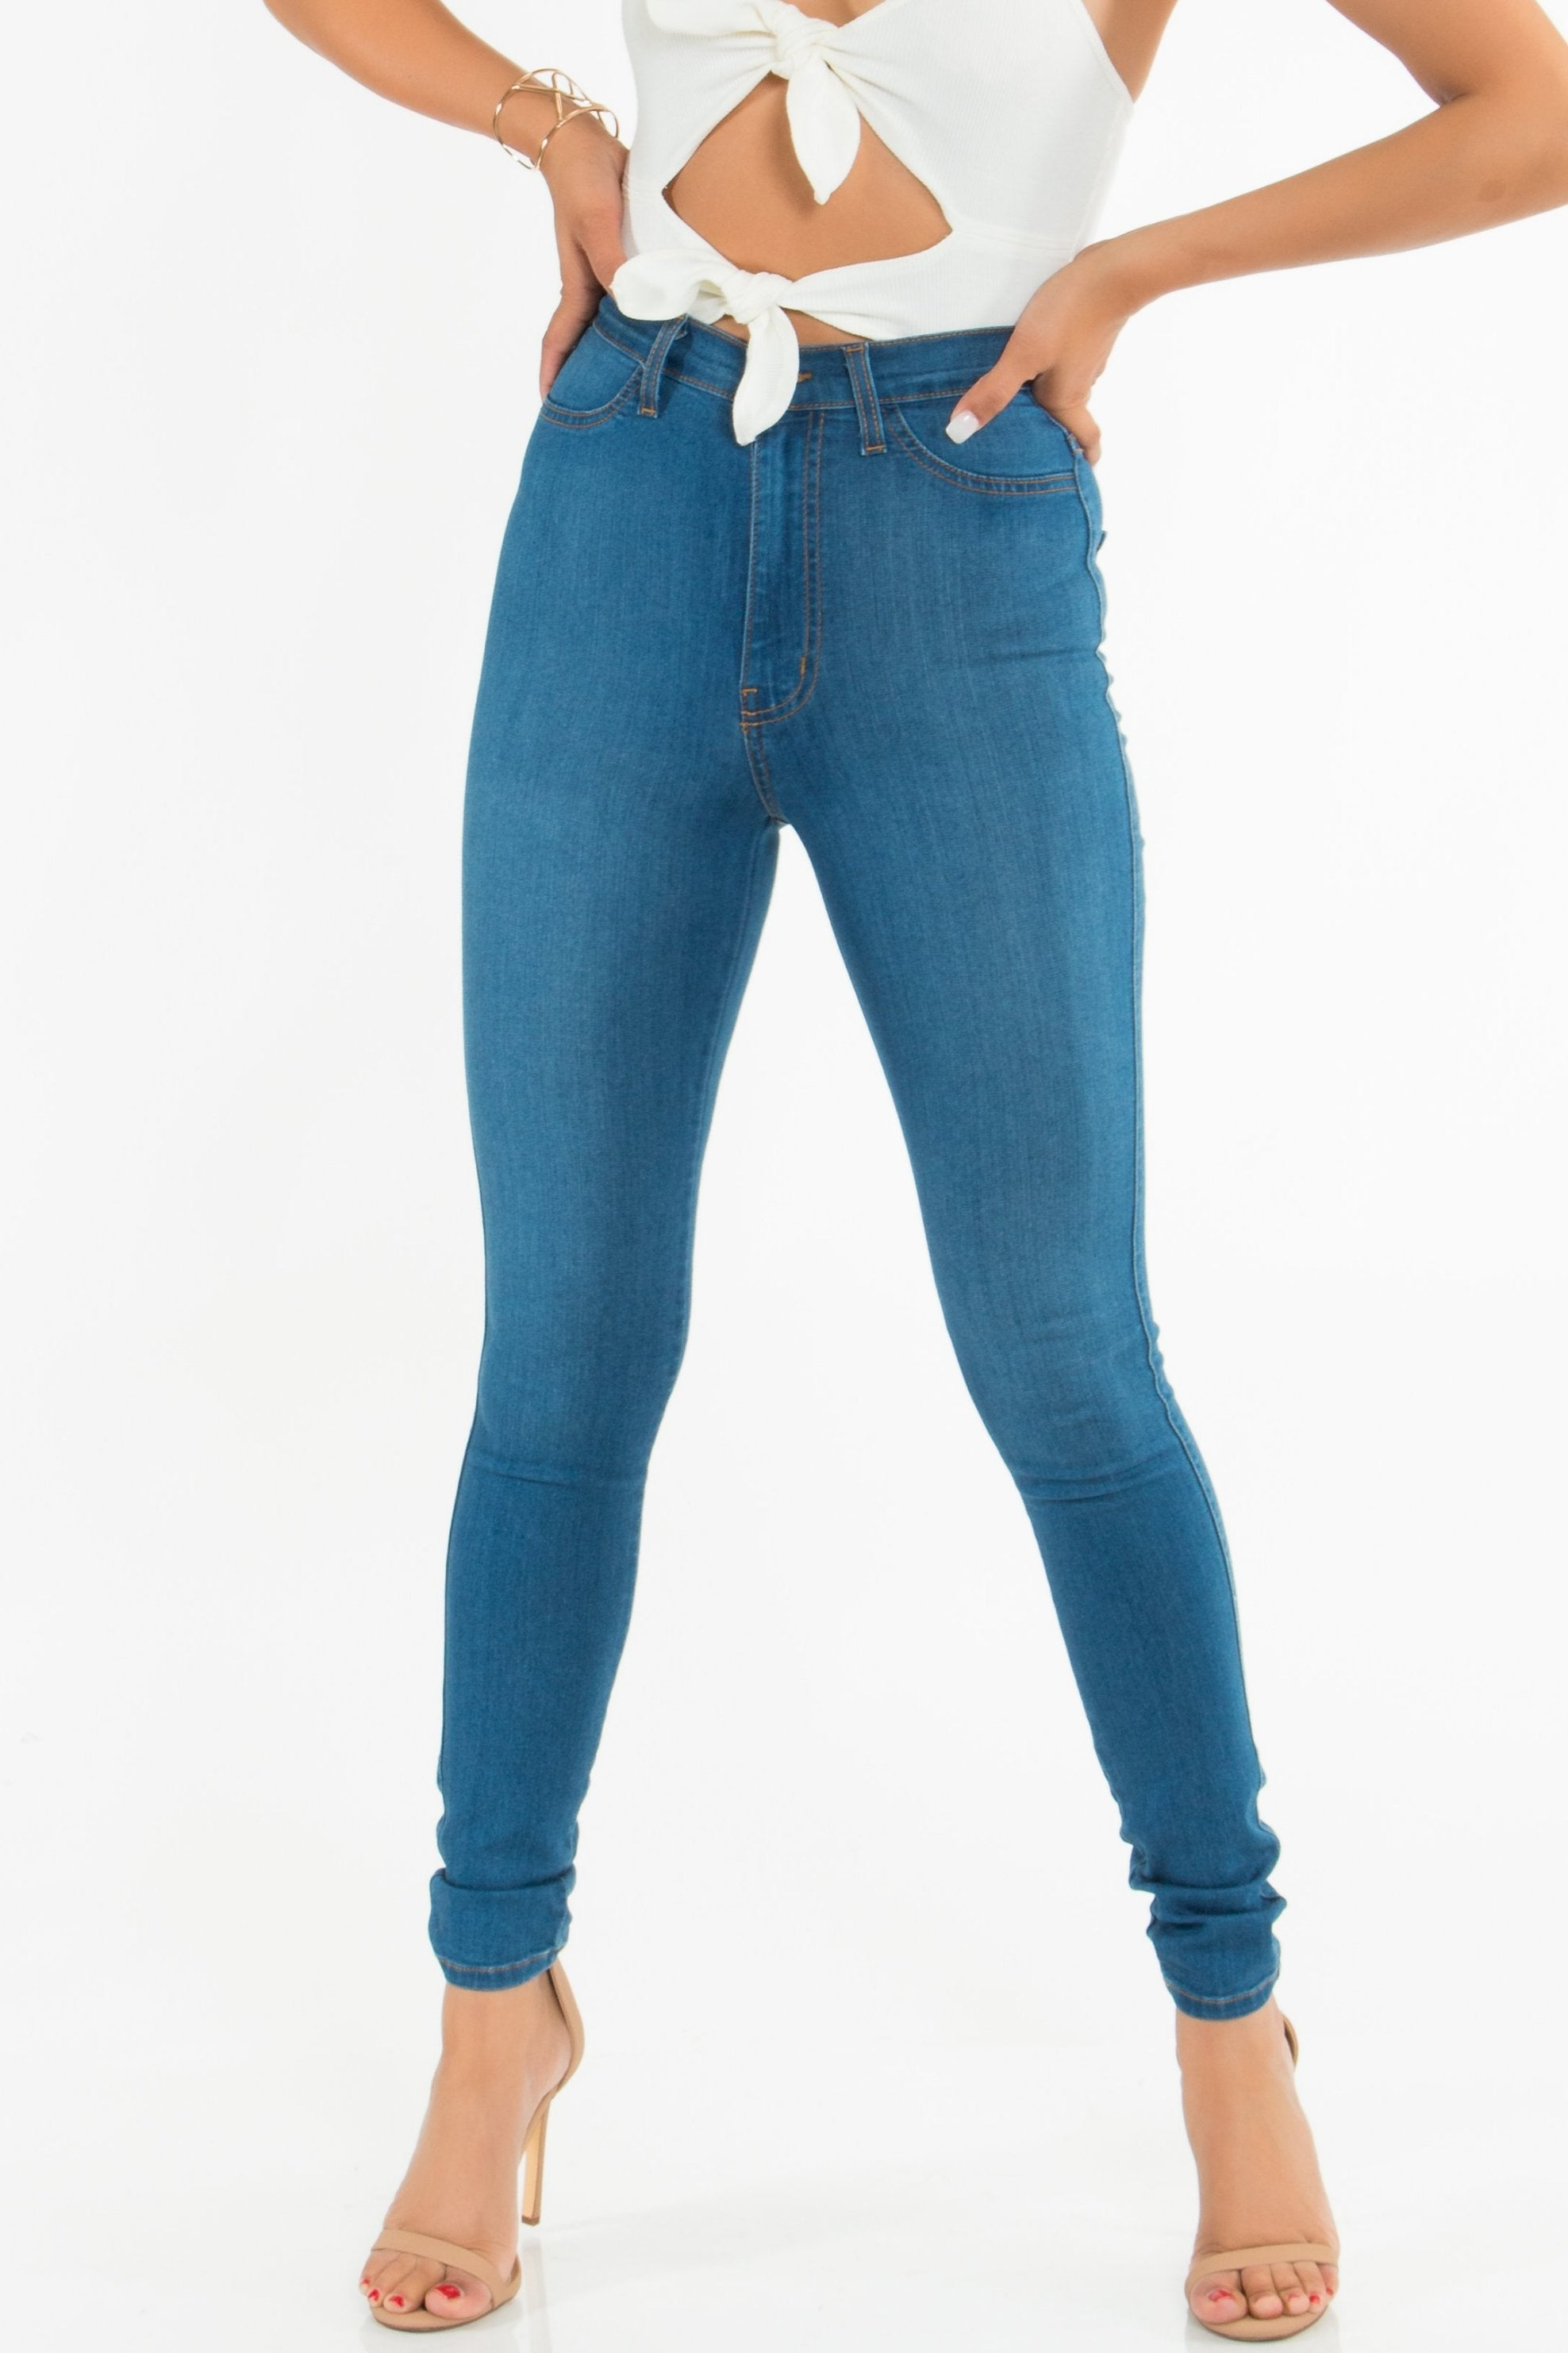 Jessie High Waisted Skinnies